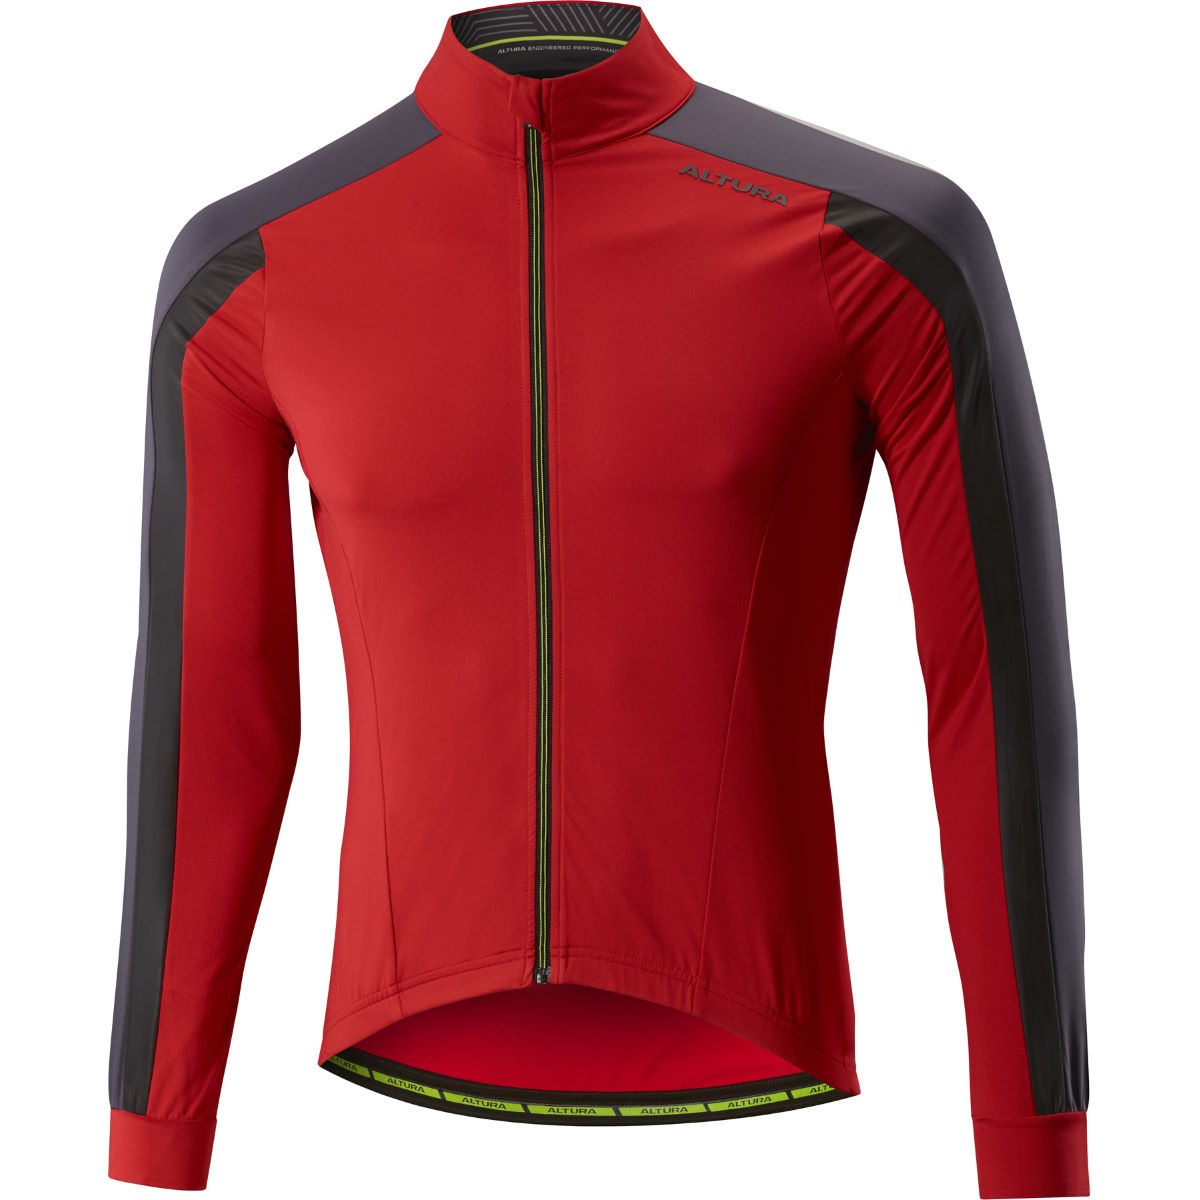 Altura NV2 Thermo Long Sleeve Jersey - XL Team Red